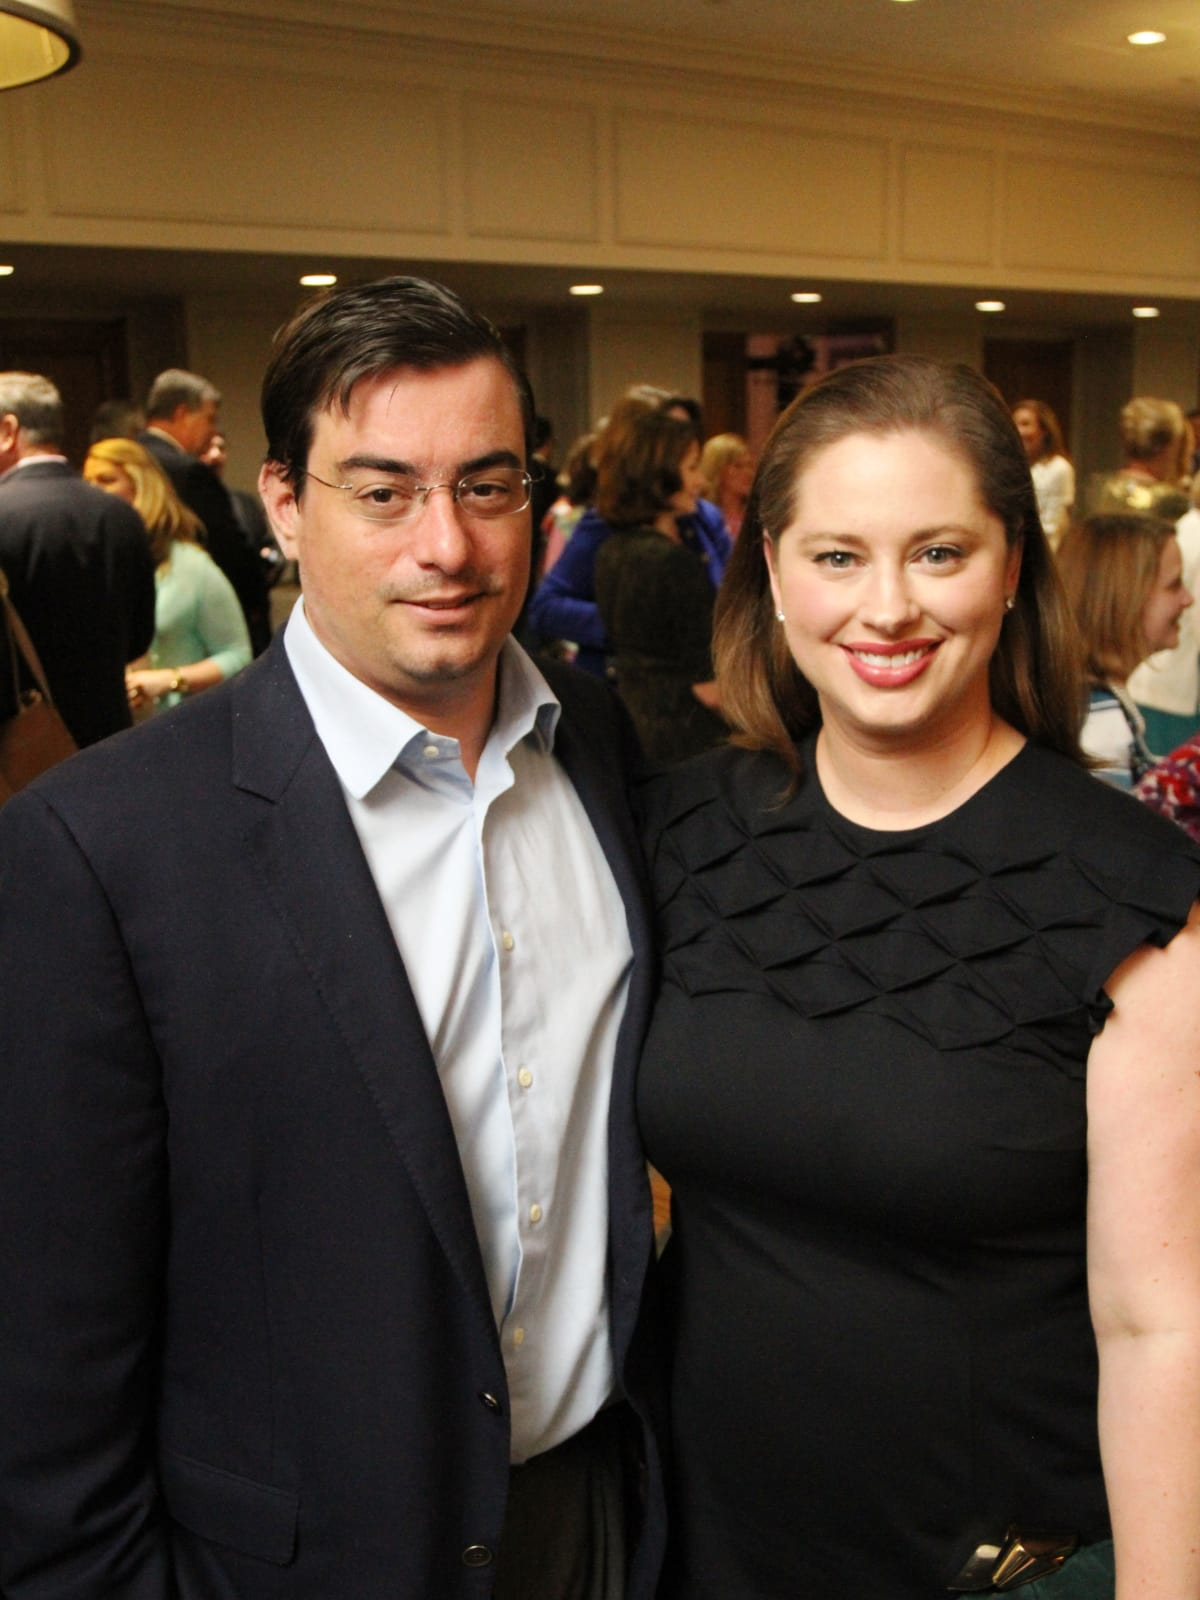 Wells and April McGee at Menninger Clinic Luncheon